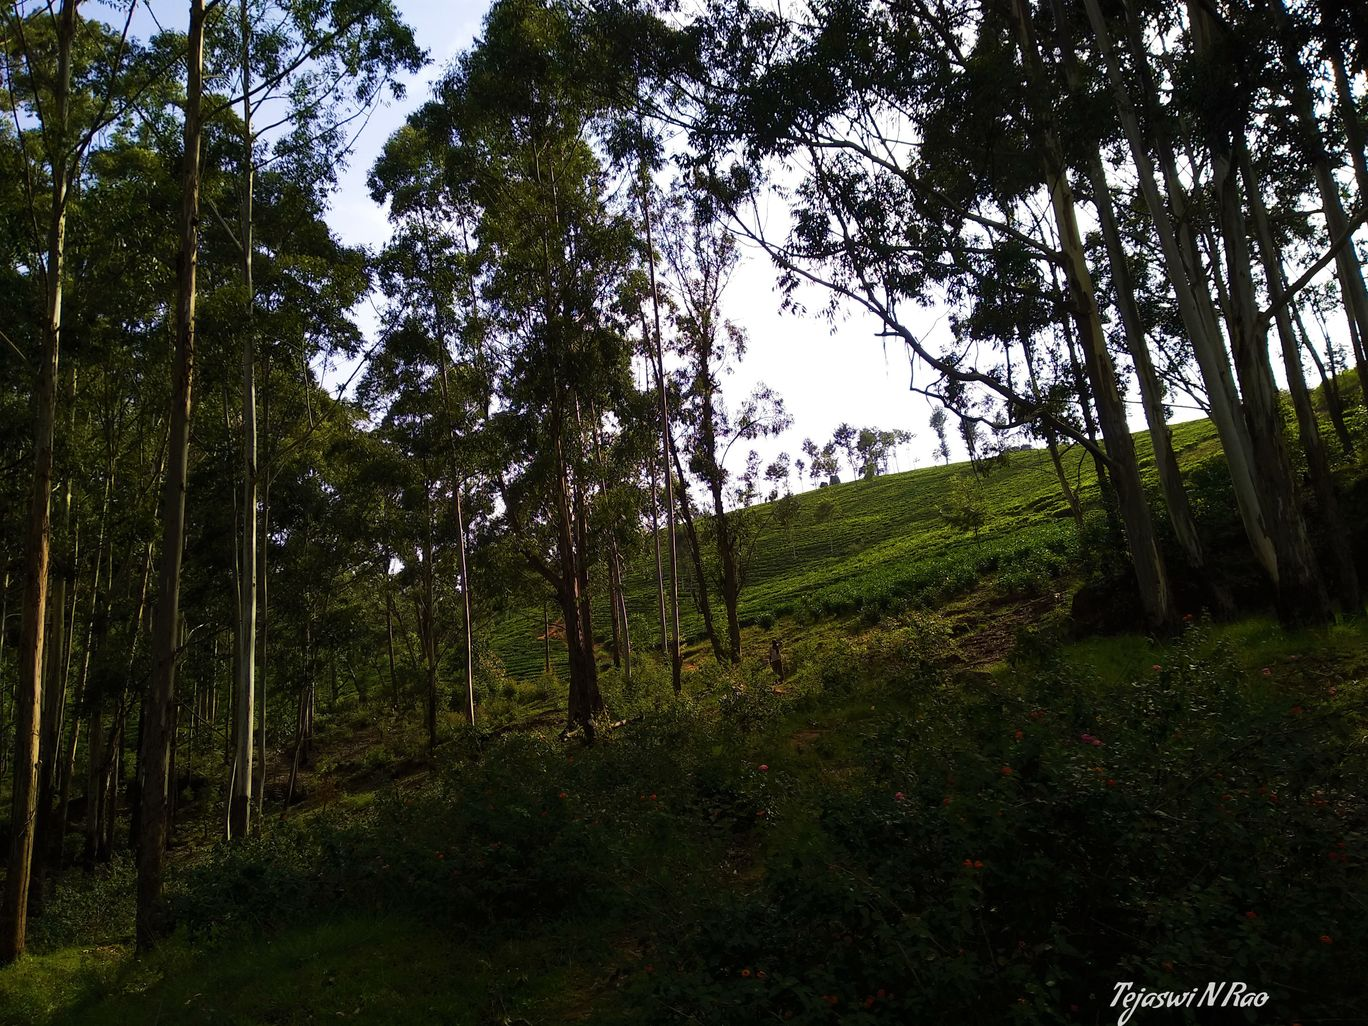 Photo of Munnar By Tejaswi N Rao